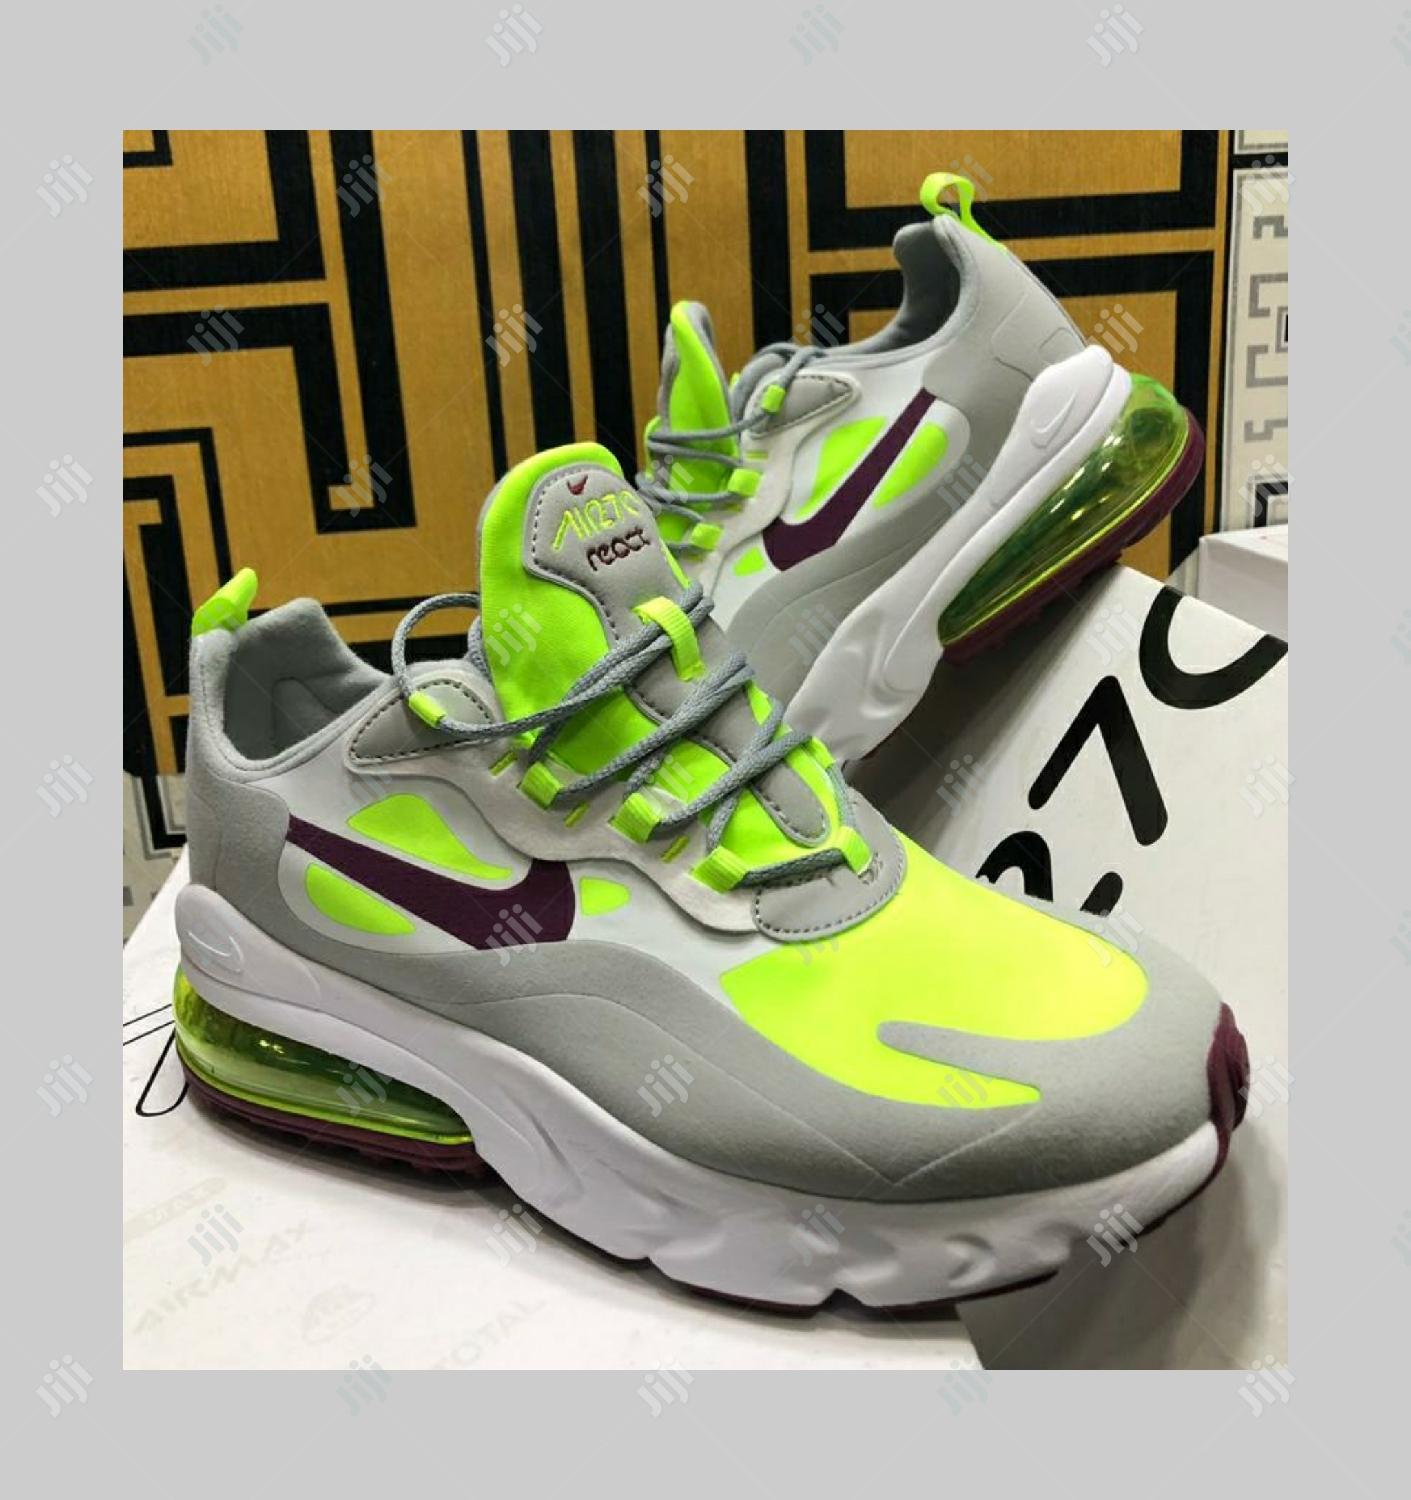 Nike Airforce 720 Sneakers | Shoes for sale in Lagos Island, Lagos State, Nigeria